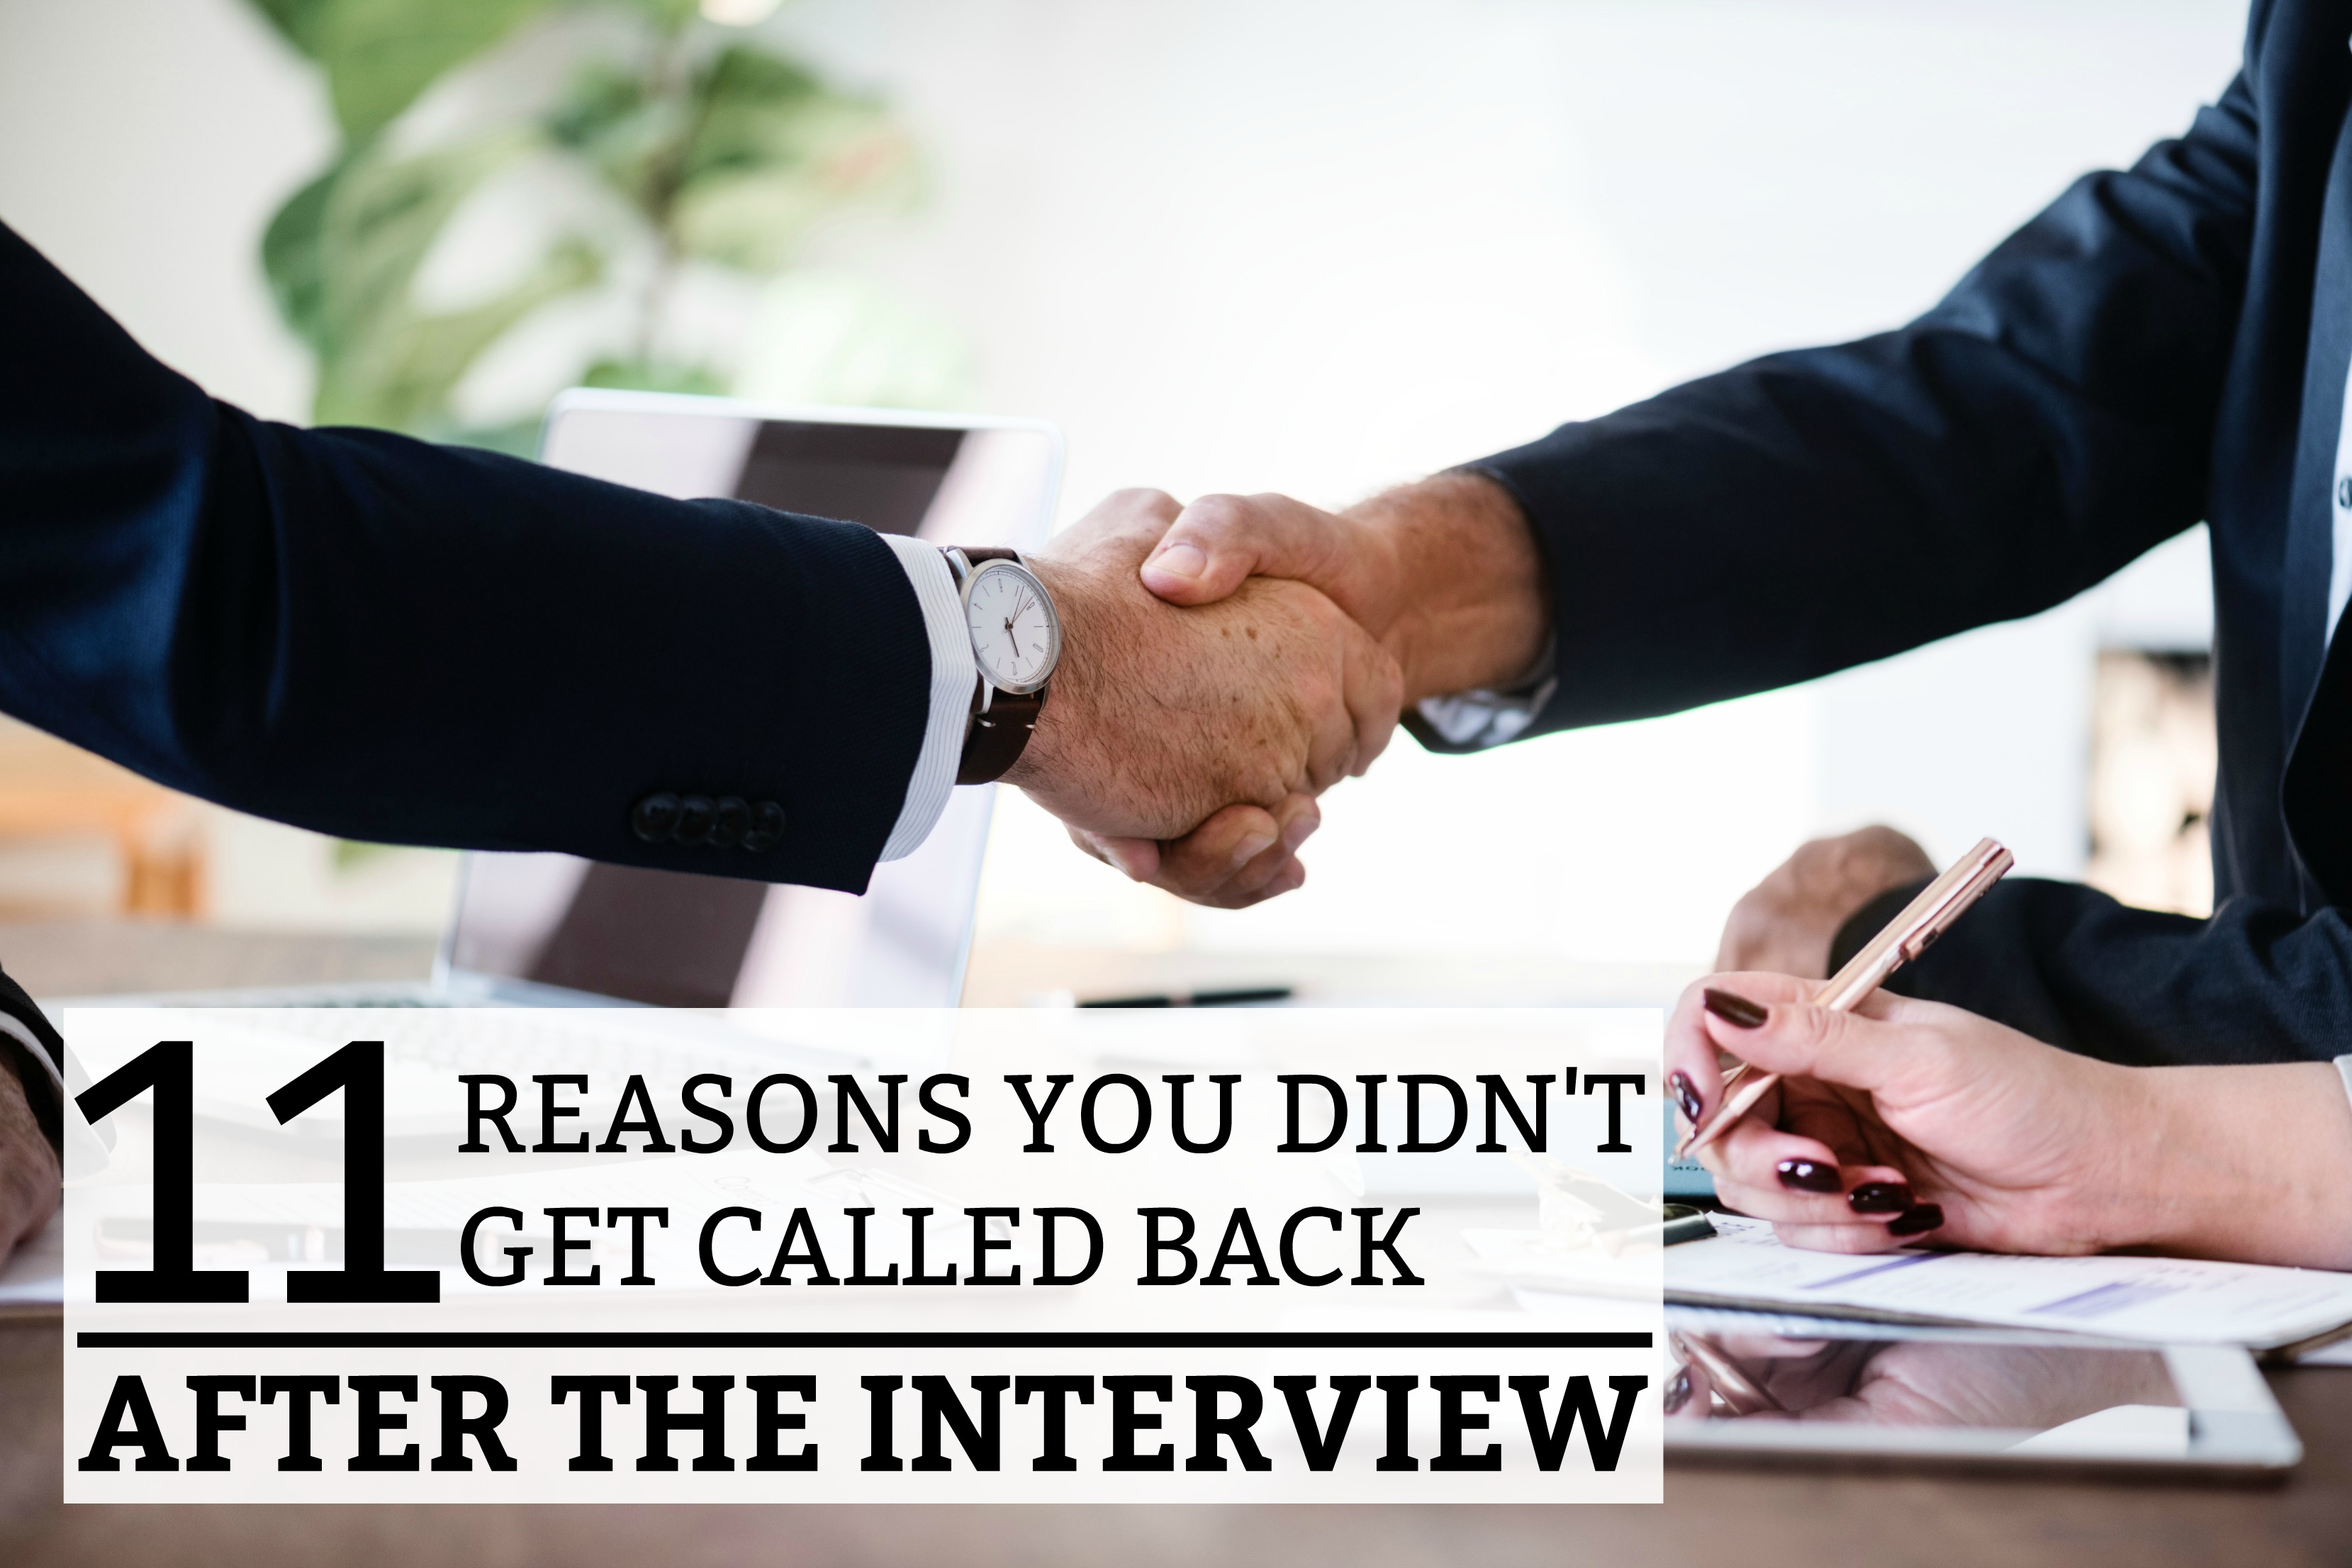 interviewing for a job is one of lifes unnerving necessities rarely does someone actually enjoy going through the interview process